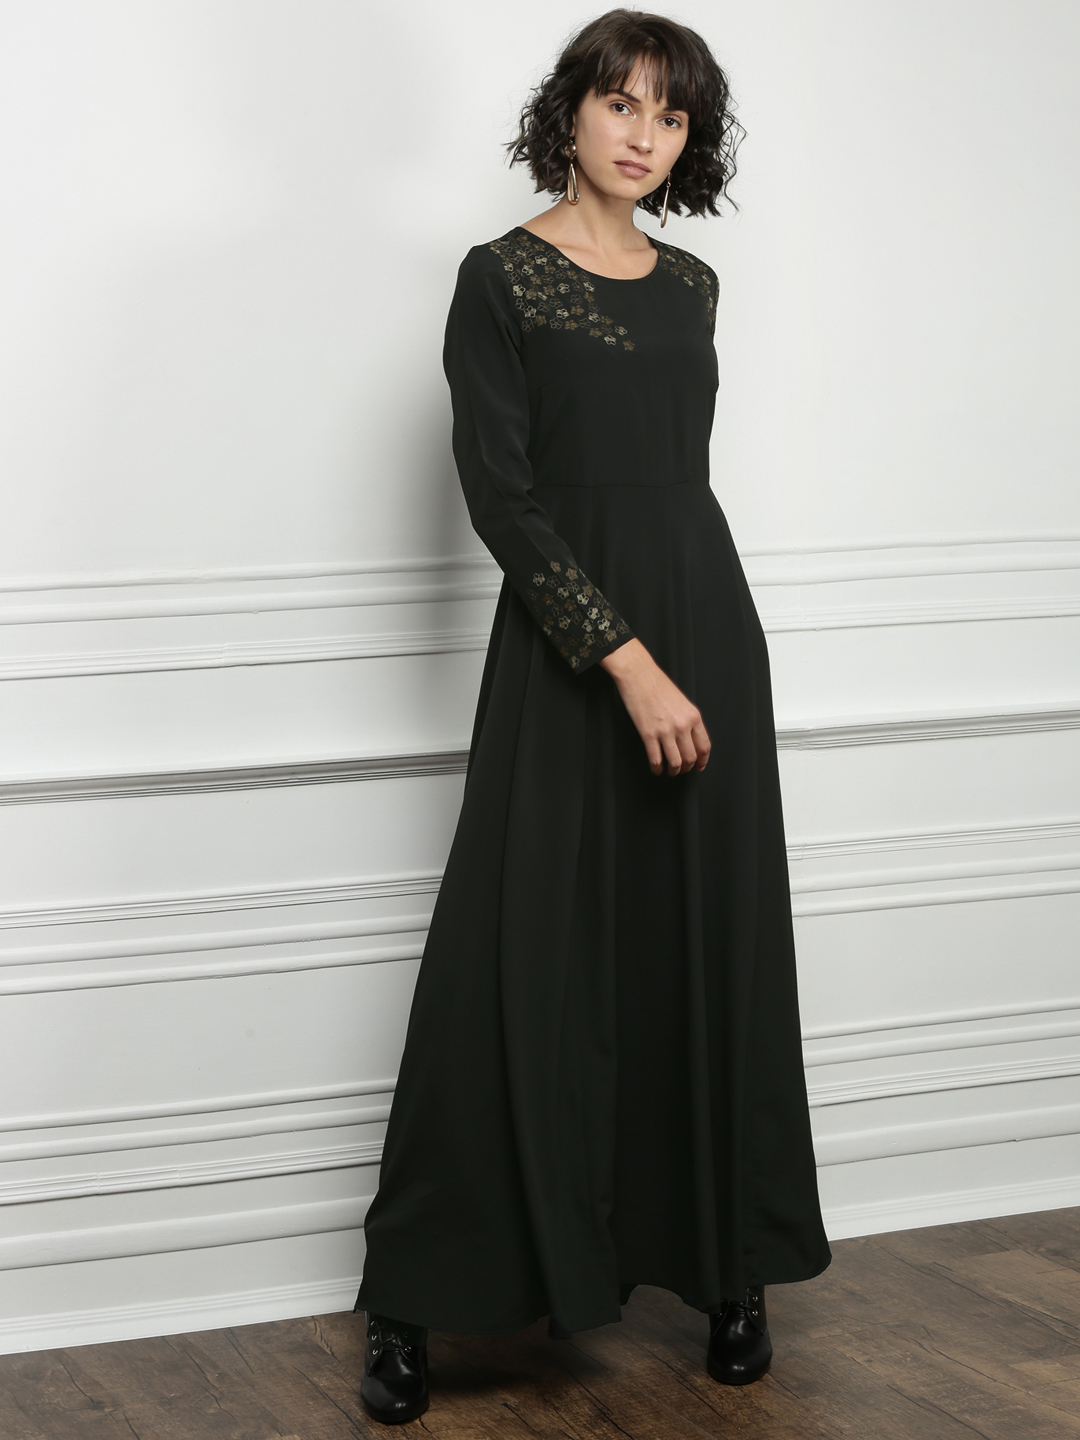 Myntra- All About You from Deepika Padukone Women Black Solid Maxi Dress- Rs. 2699